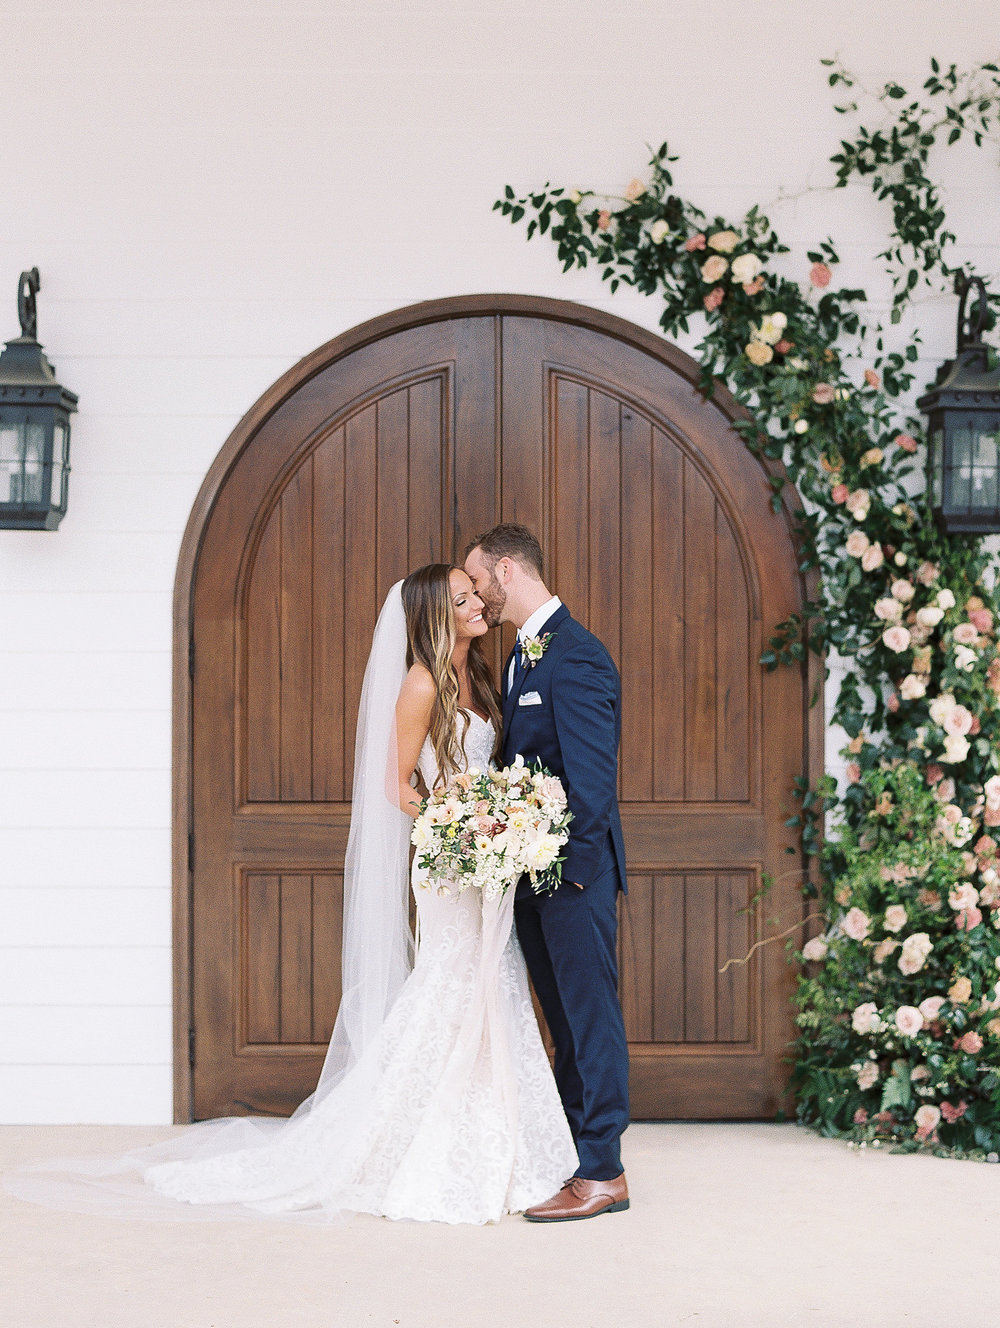 jessica-zimmerman-events-ceremony-floral-arch.jpg